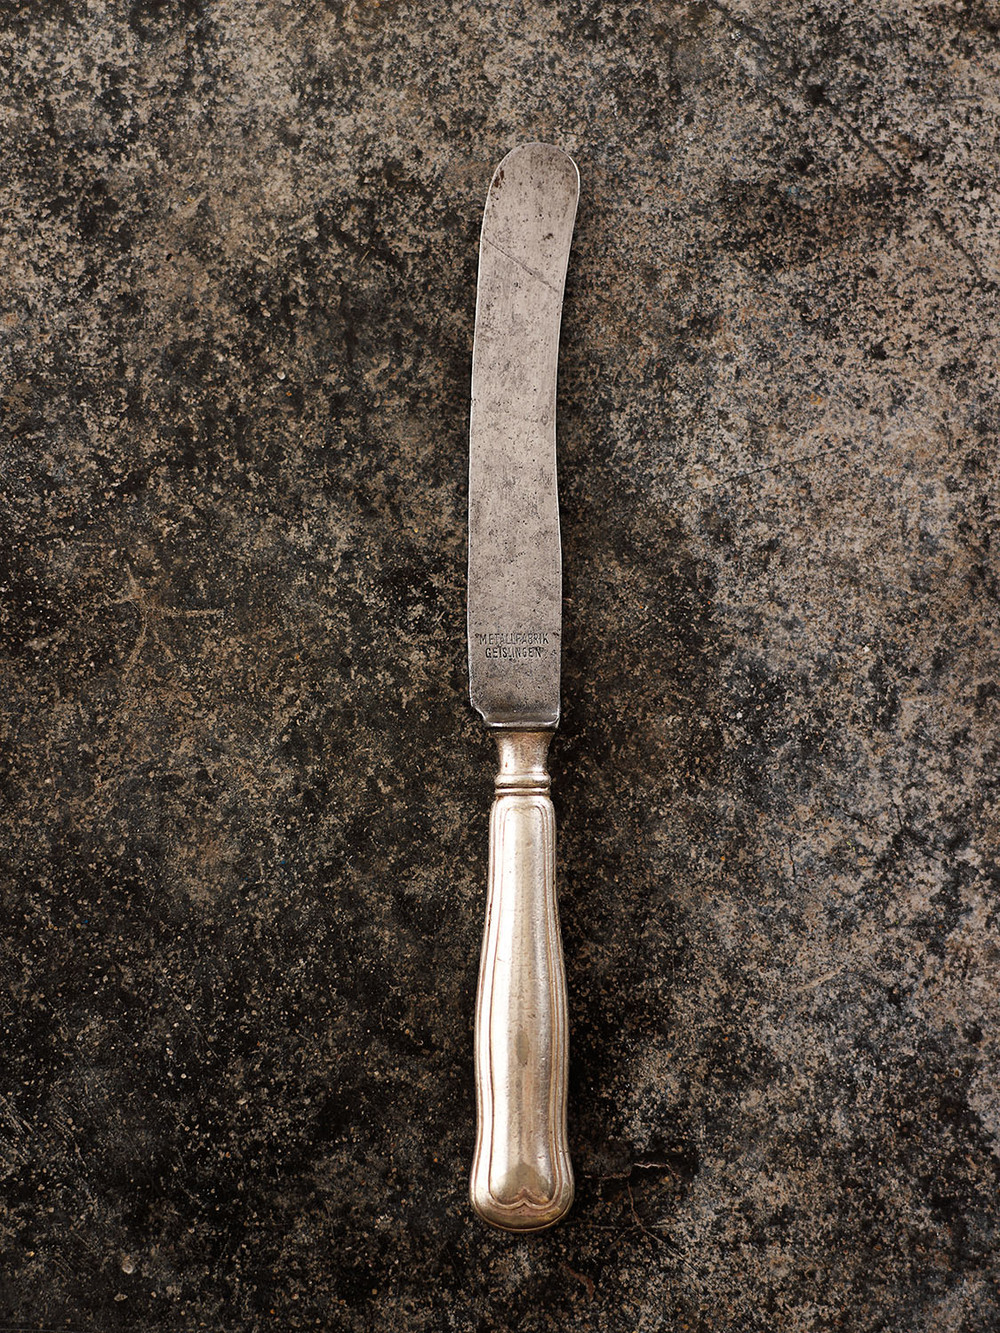 #9 Geislingen Knife